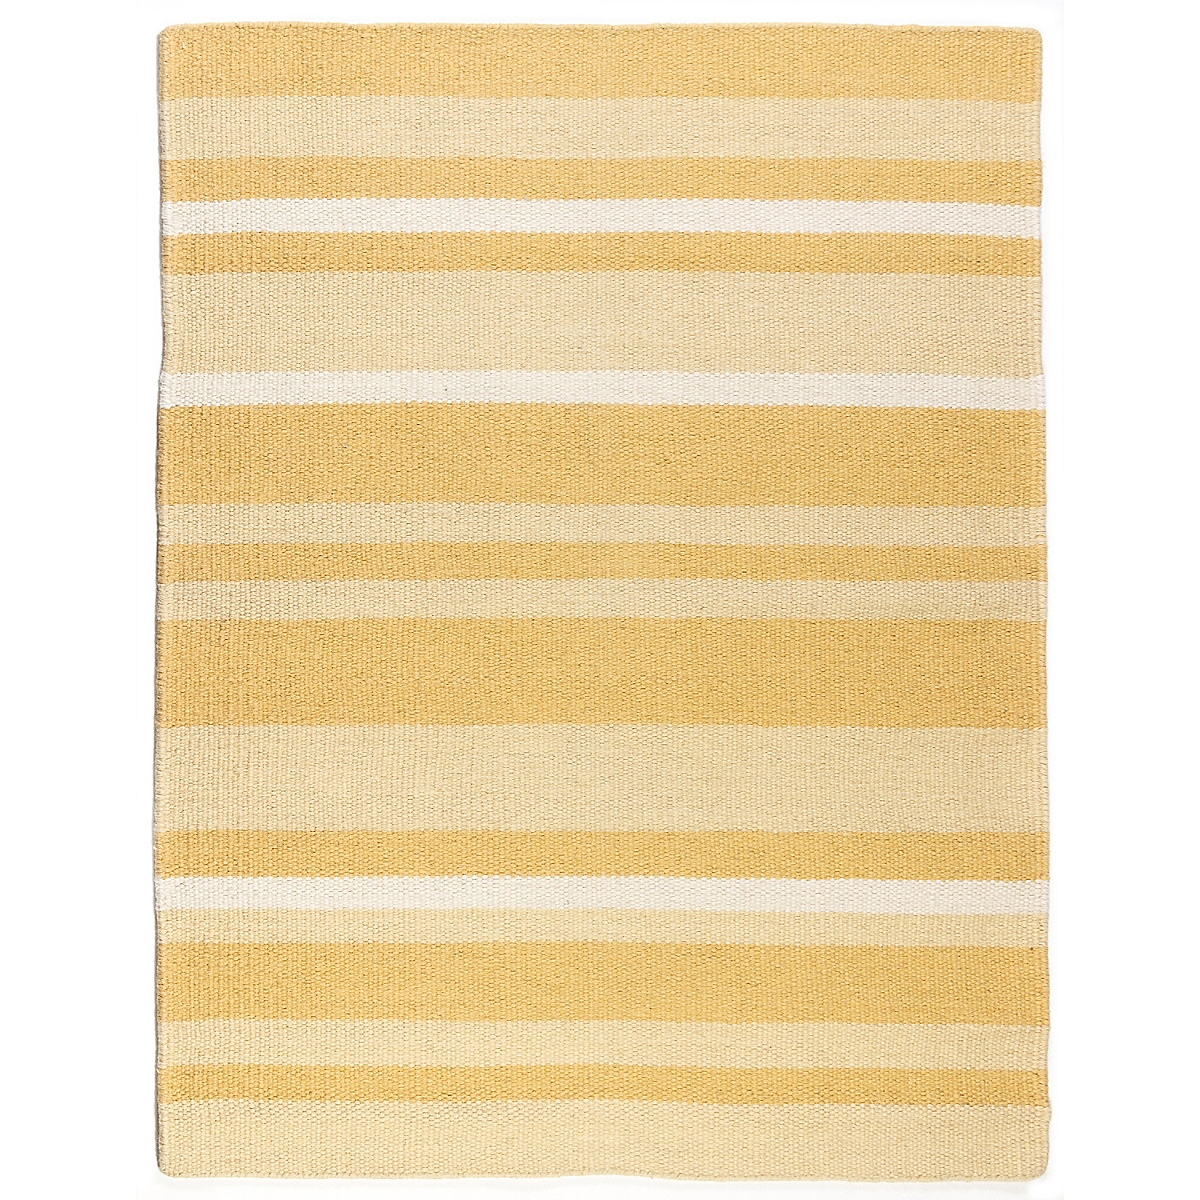 Libby Island Wool Berber Striped Rug